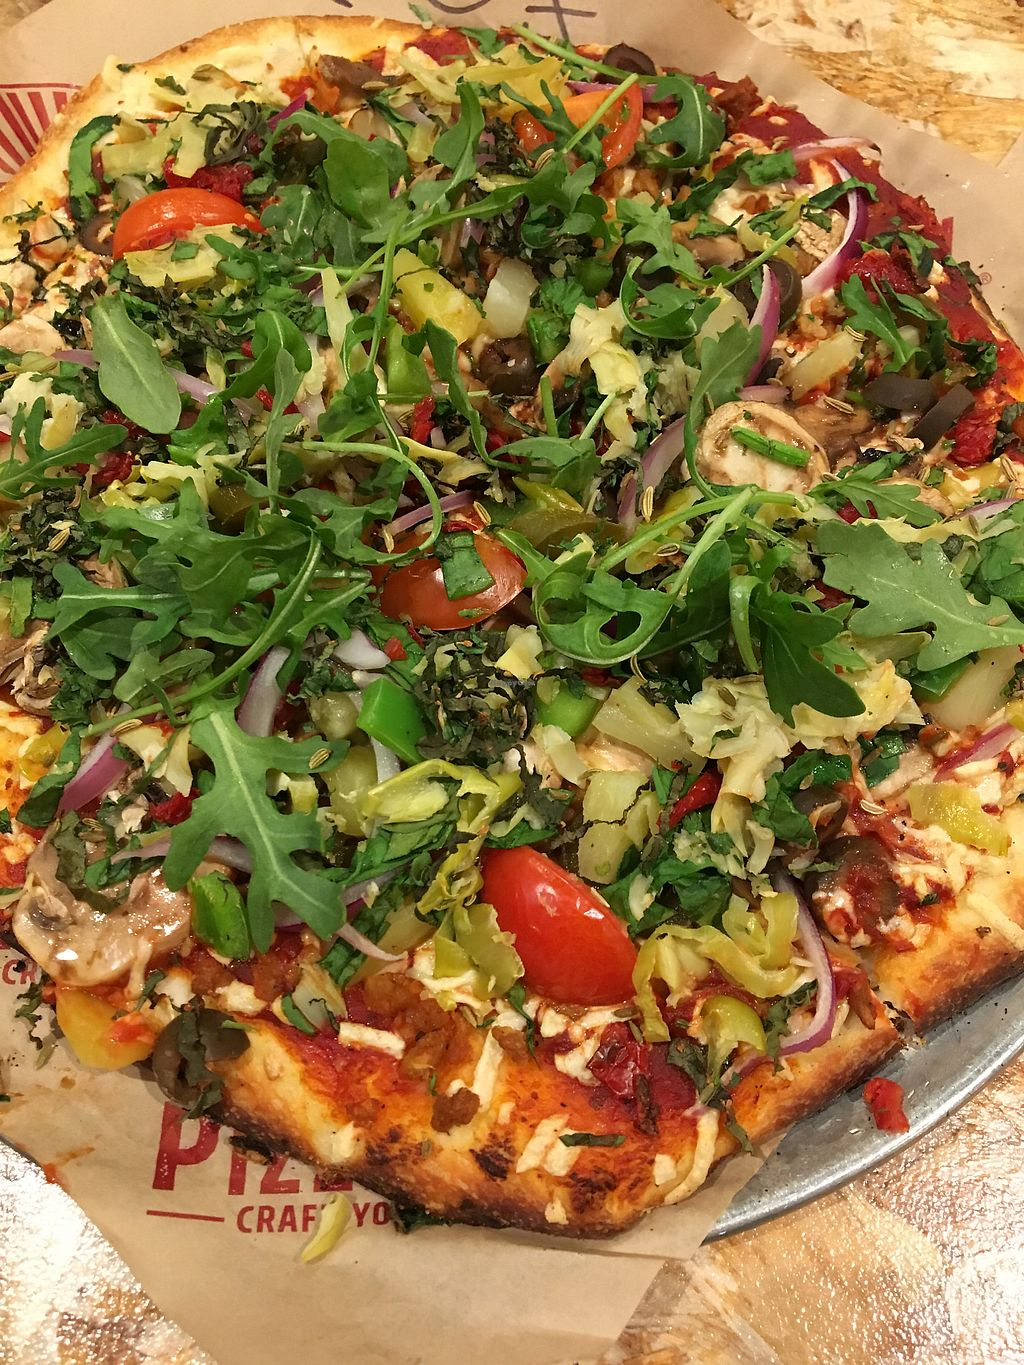 """Photo of PizzaRev  by <a href=""""/members/profile/RyanSt"""">RyanSt</a> <br/>Double dough with vegan cheese and sausage plus all the veggies! <br/> January 21, 2018  - <a href='/contact/abuse/image/107596/349219'>Report</a>"""